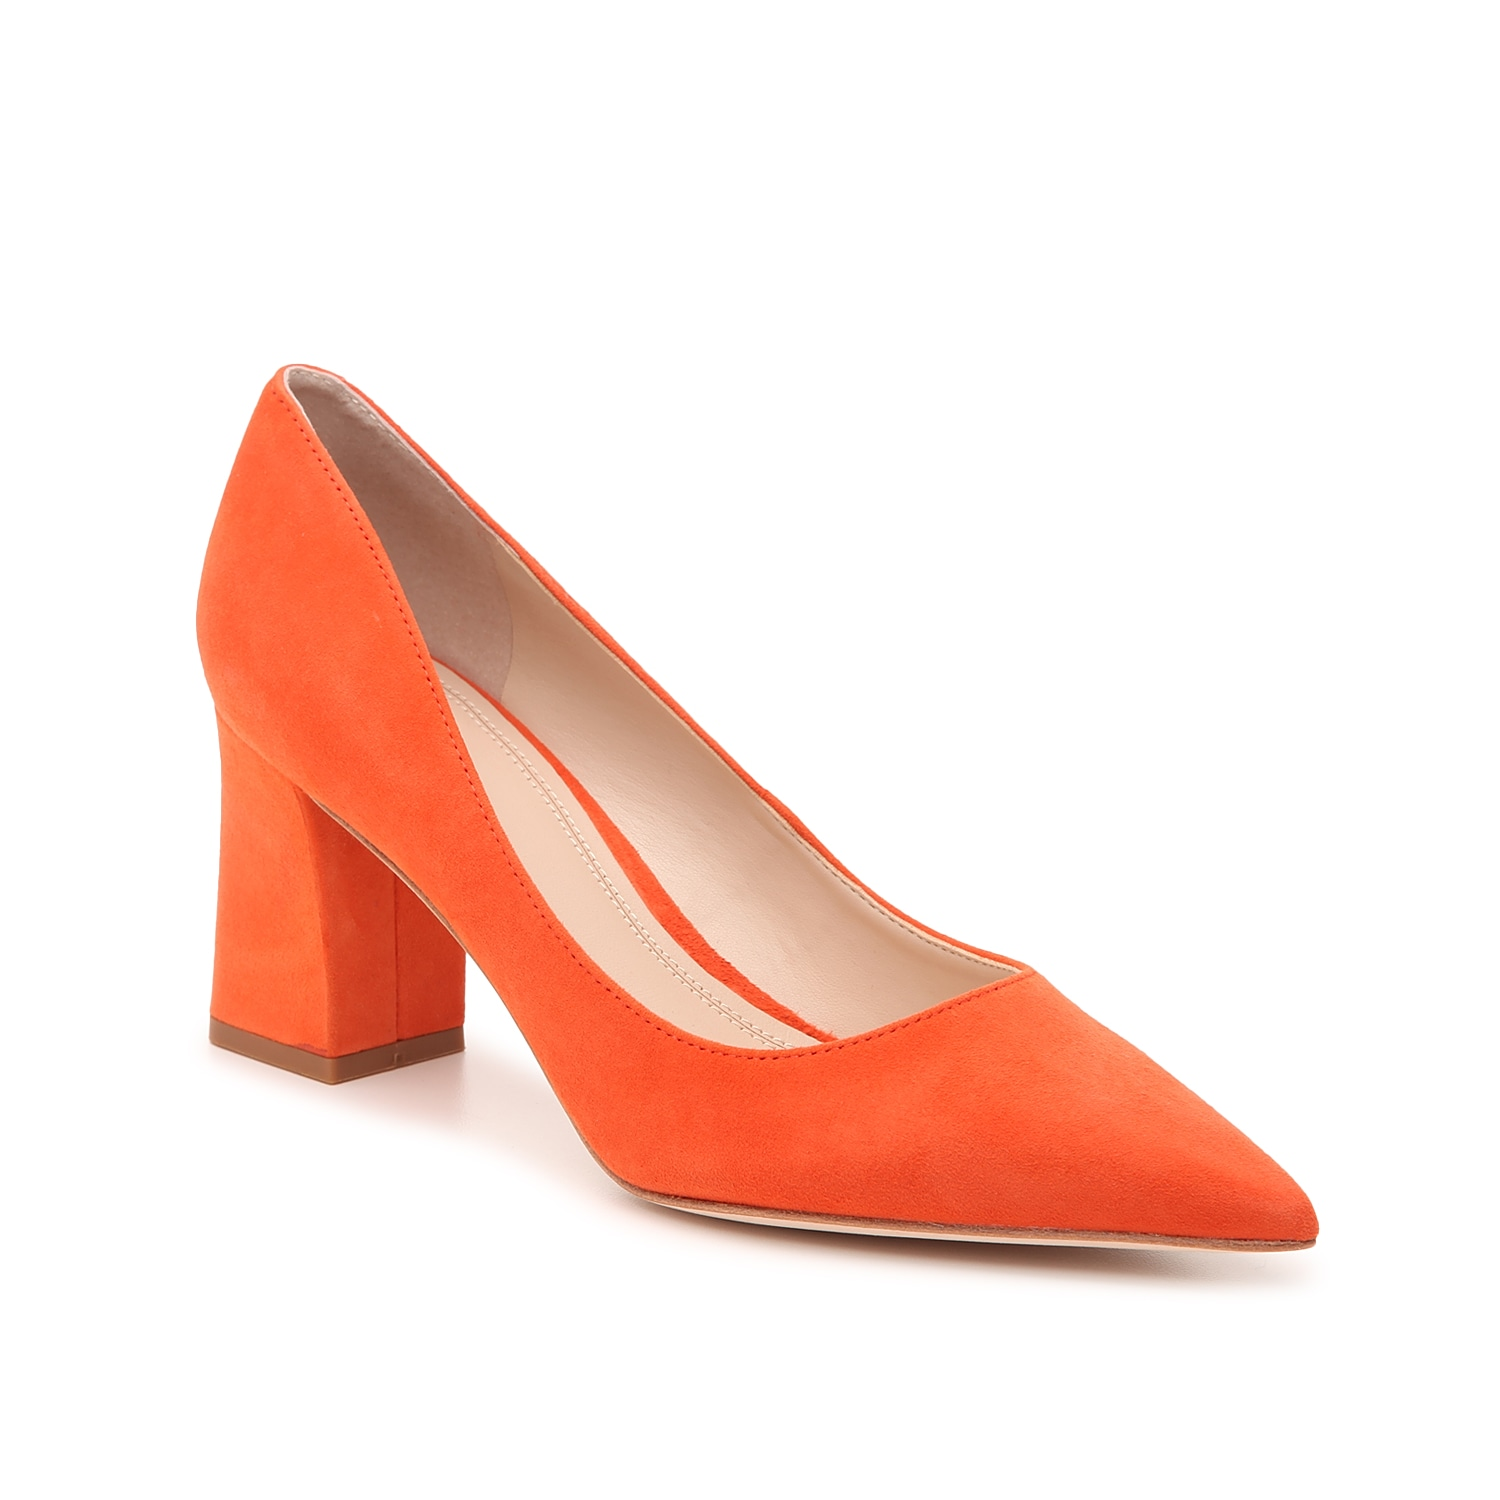 Flaunt your vibrant personality with the Zala6 pumps from Marc Fisher Ltd. This pointed toe pair features a lively hue and square block heel to bring extra character to printed dresses or skirts.